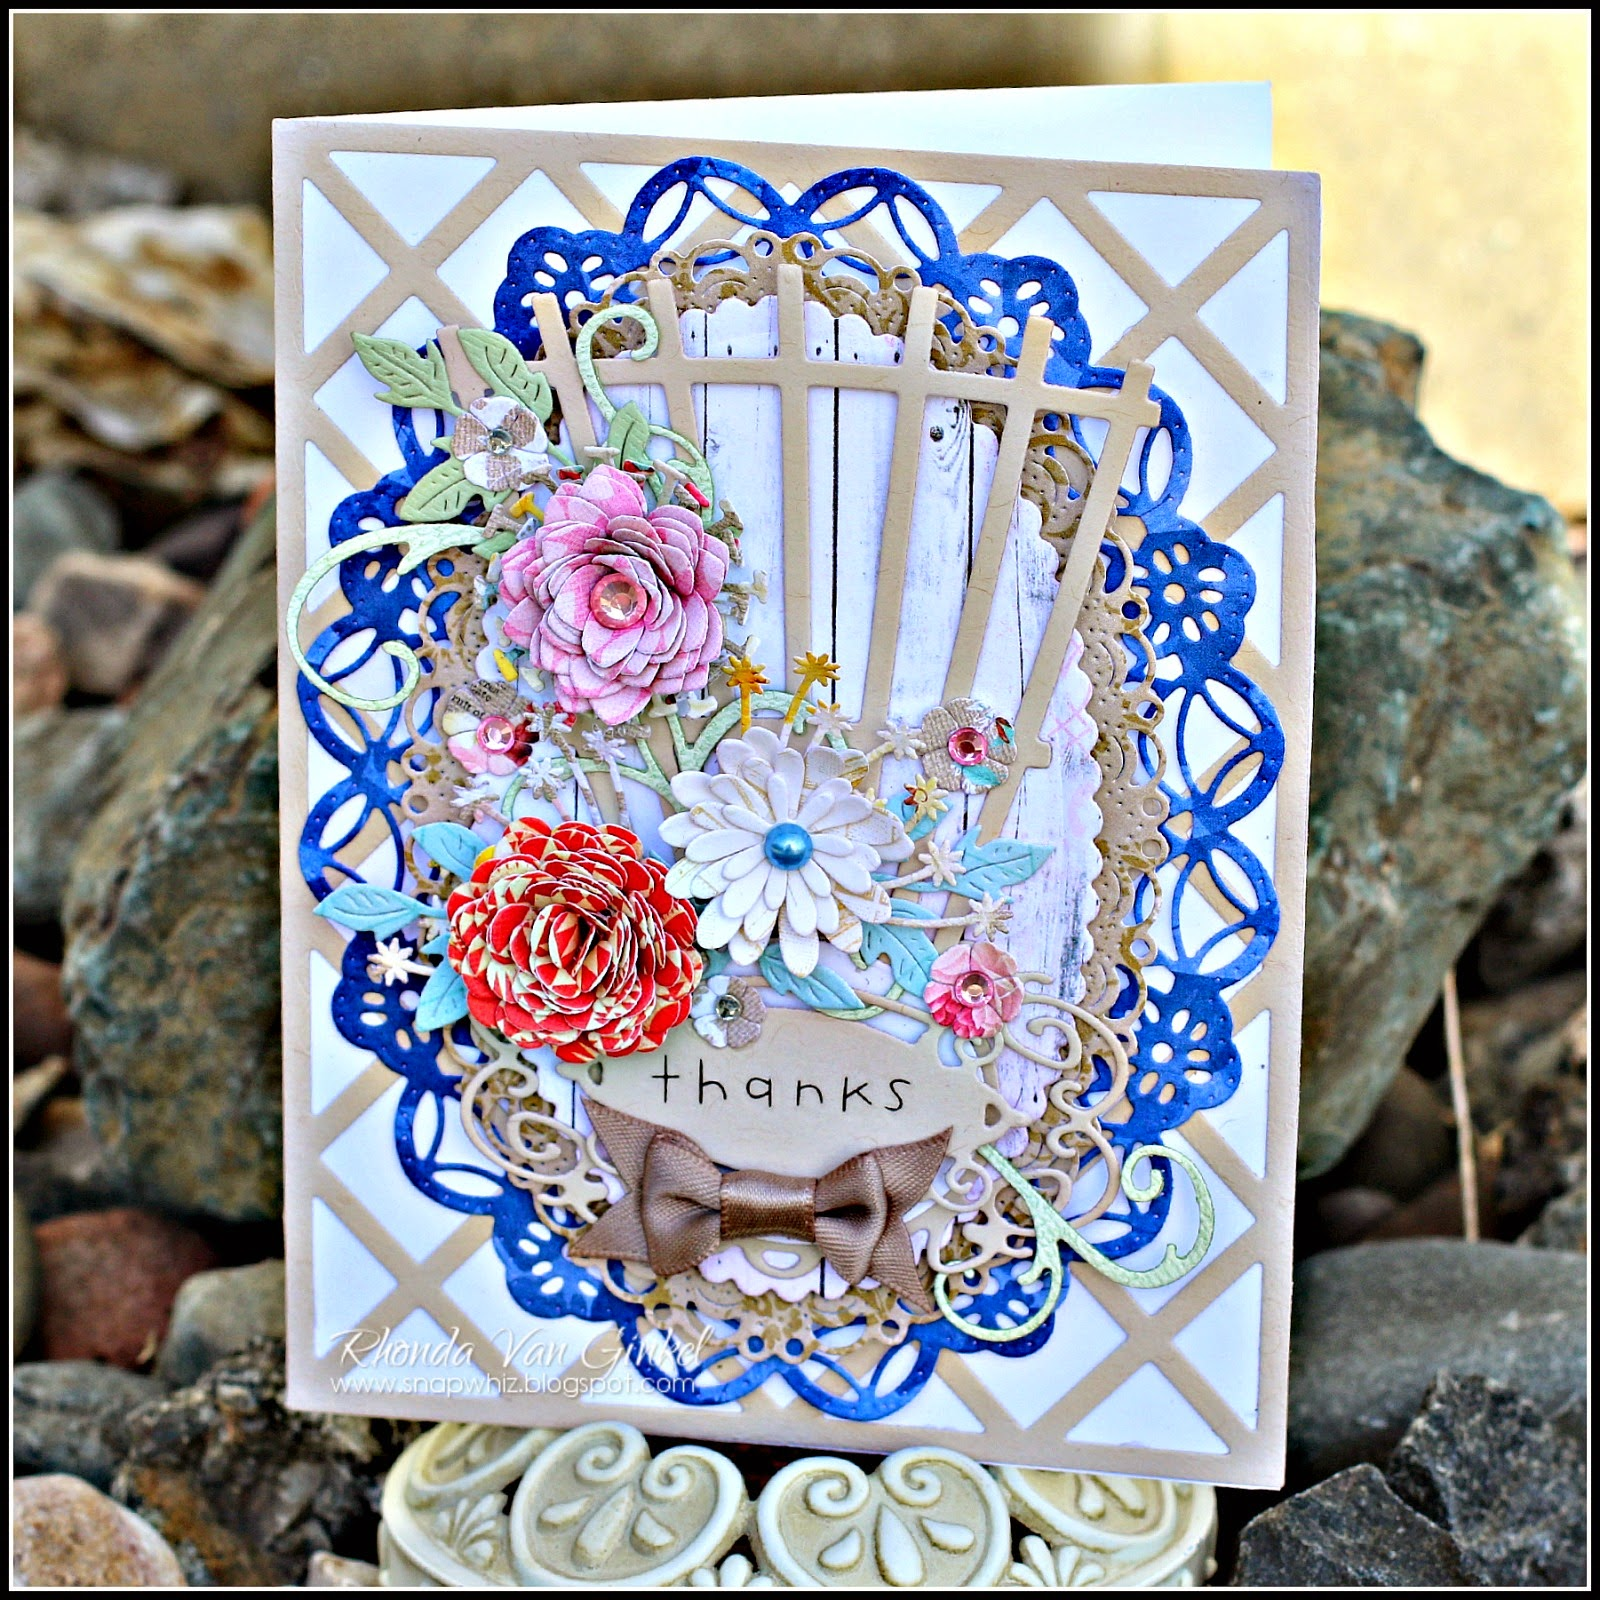 Lattice and Trellis card designed for Cheery Lynn Designs by Rhonda Van Ginkel